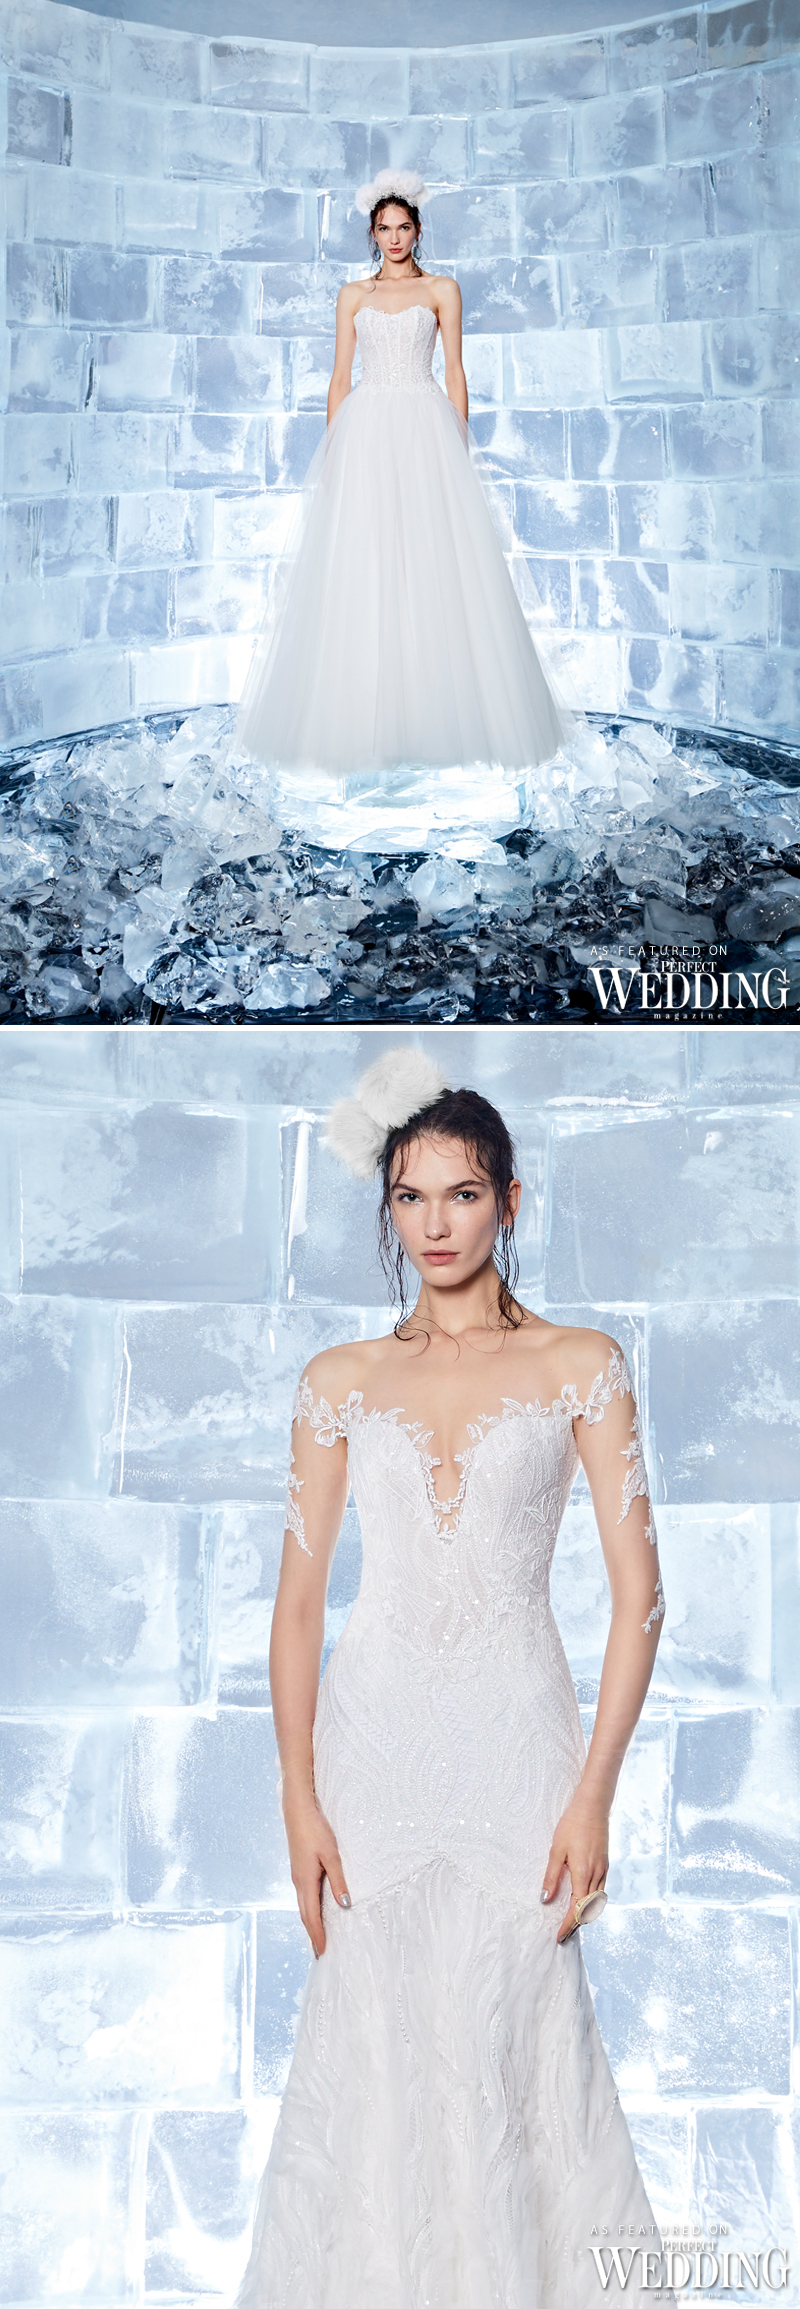 Ines by Ines Di Santo, Ines Di Santo, Ines Di Santo Wedding dresses, Wedding Gowns, Savvy Bride, Wedding Dresses Fall 2018, Perfect Wedding Magazine, Perfect Wedding Blog